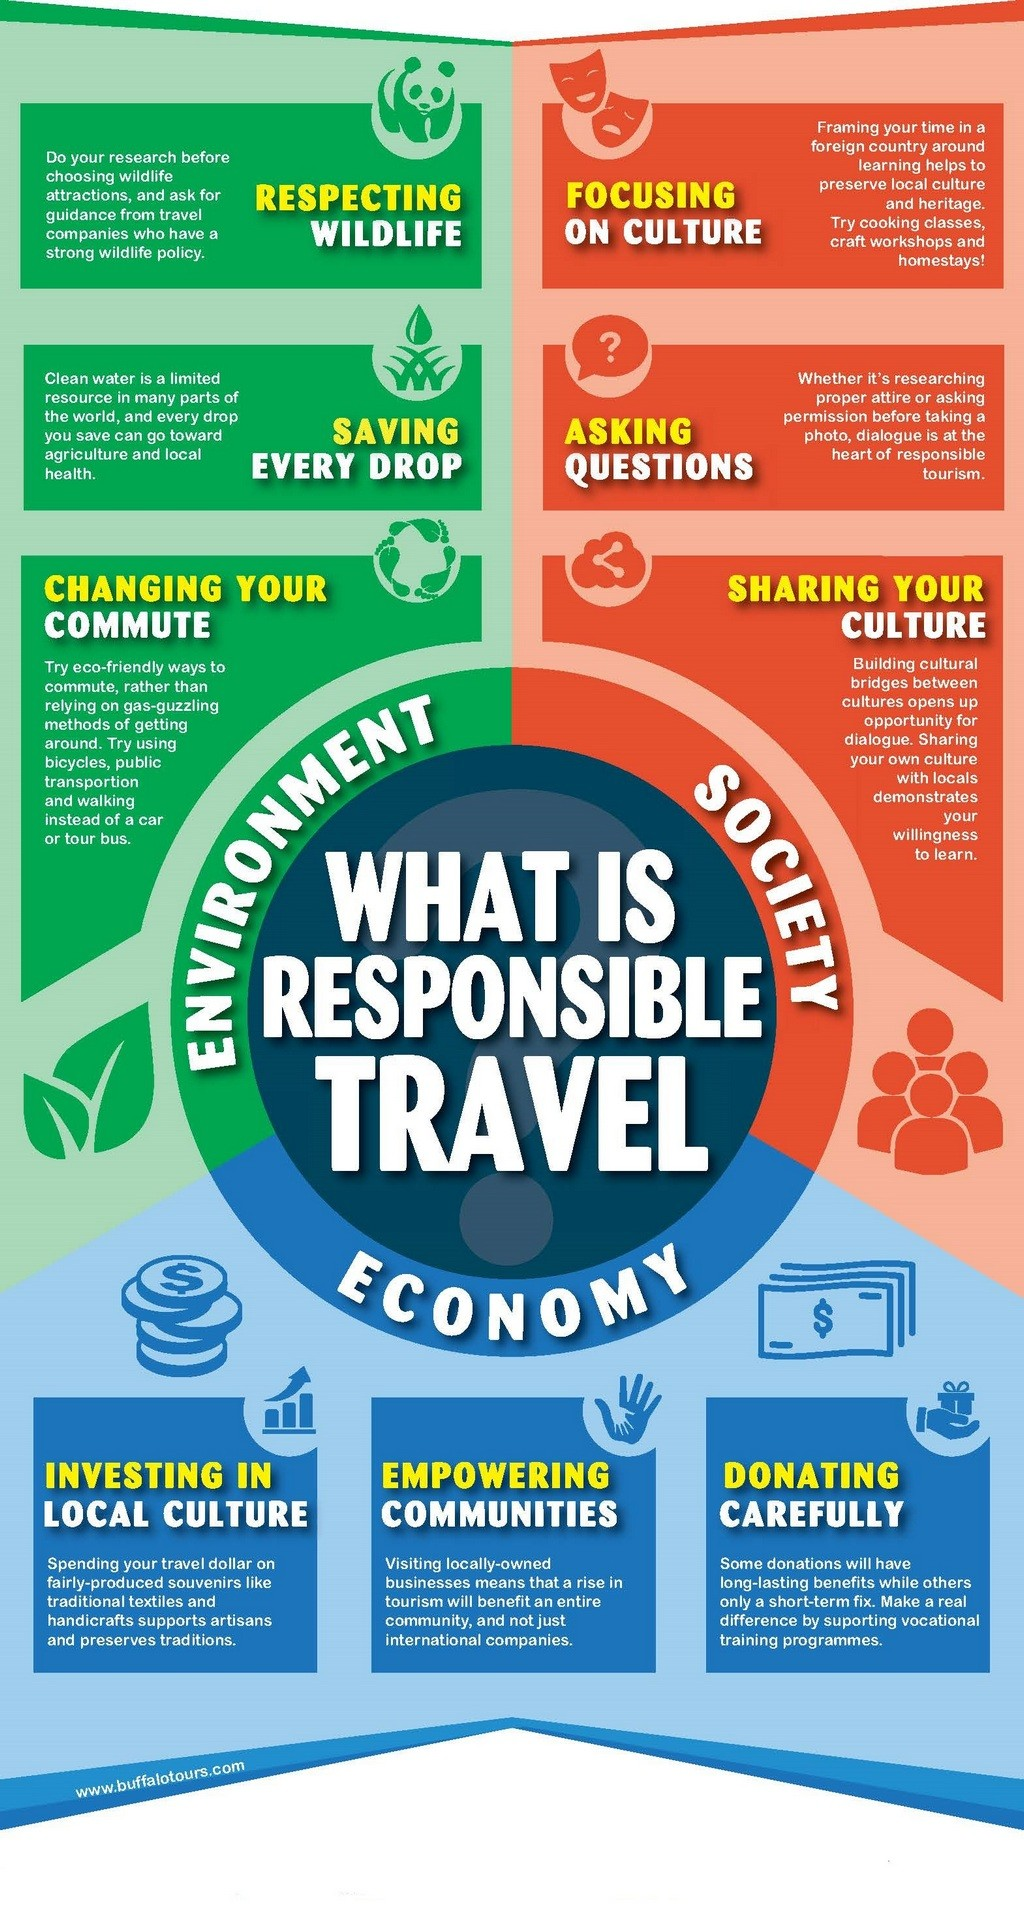 What is Responsible Travel - httpwww.buffalotours.com